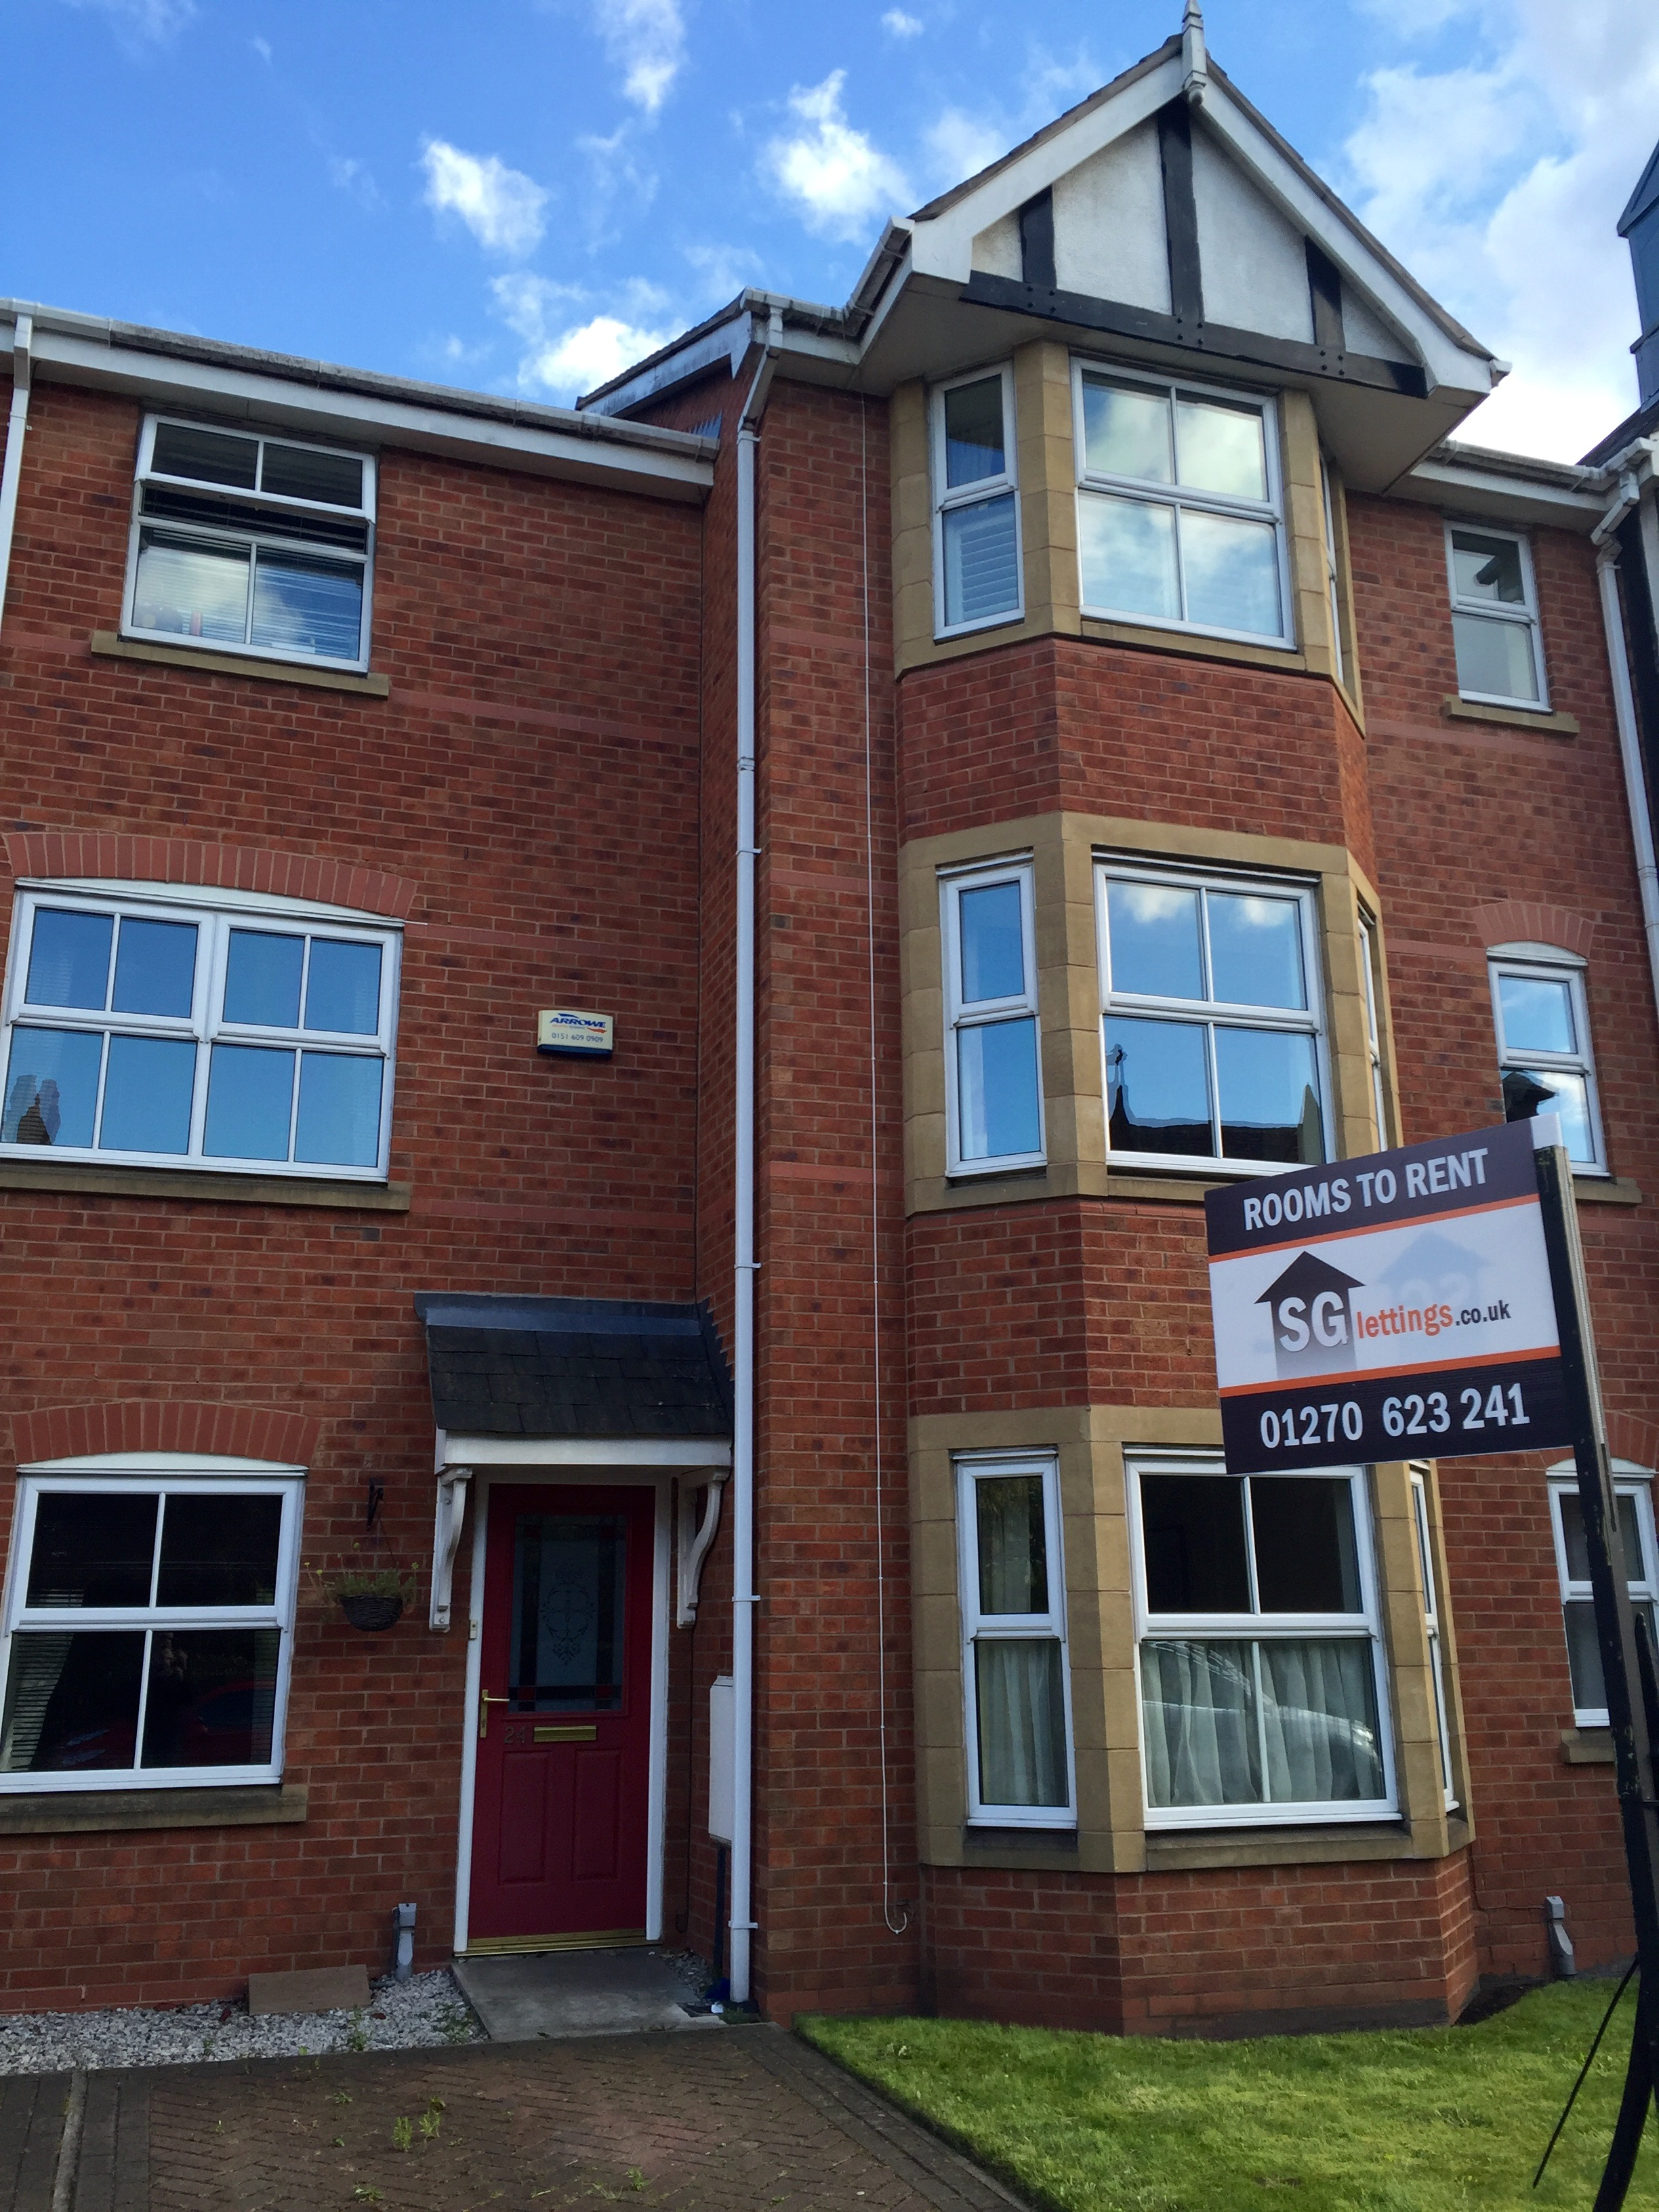 Rooms To Rent At St Andrews Court Crewe Sg Lettings